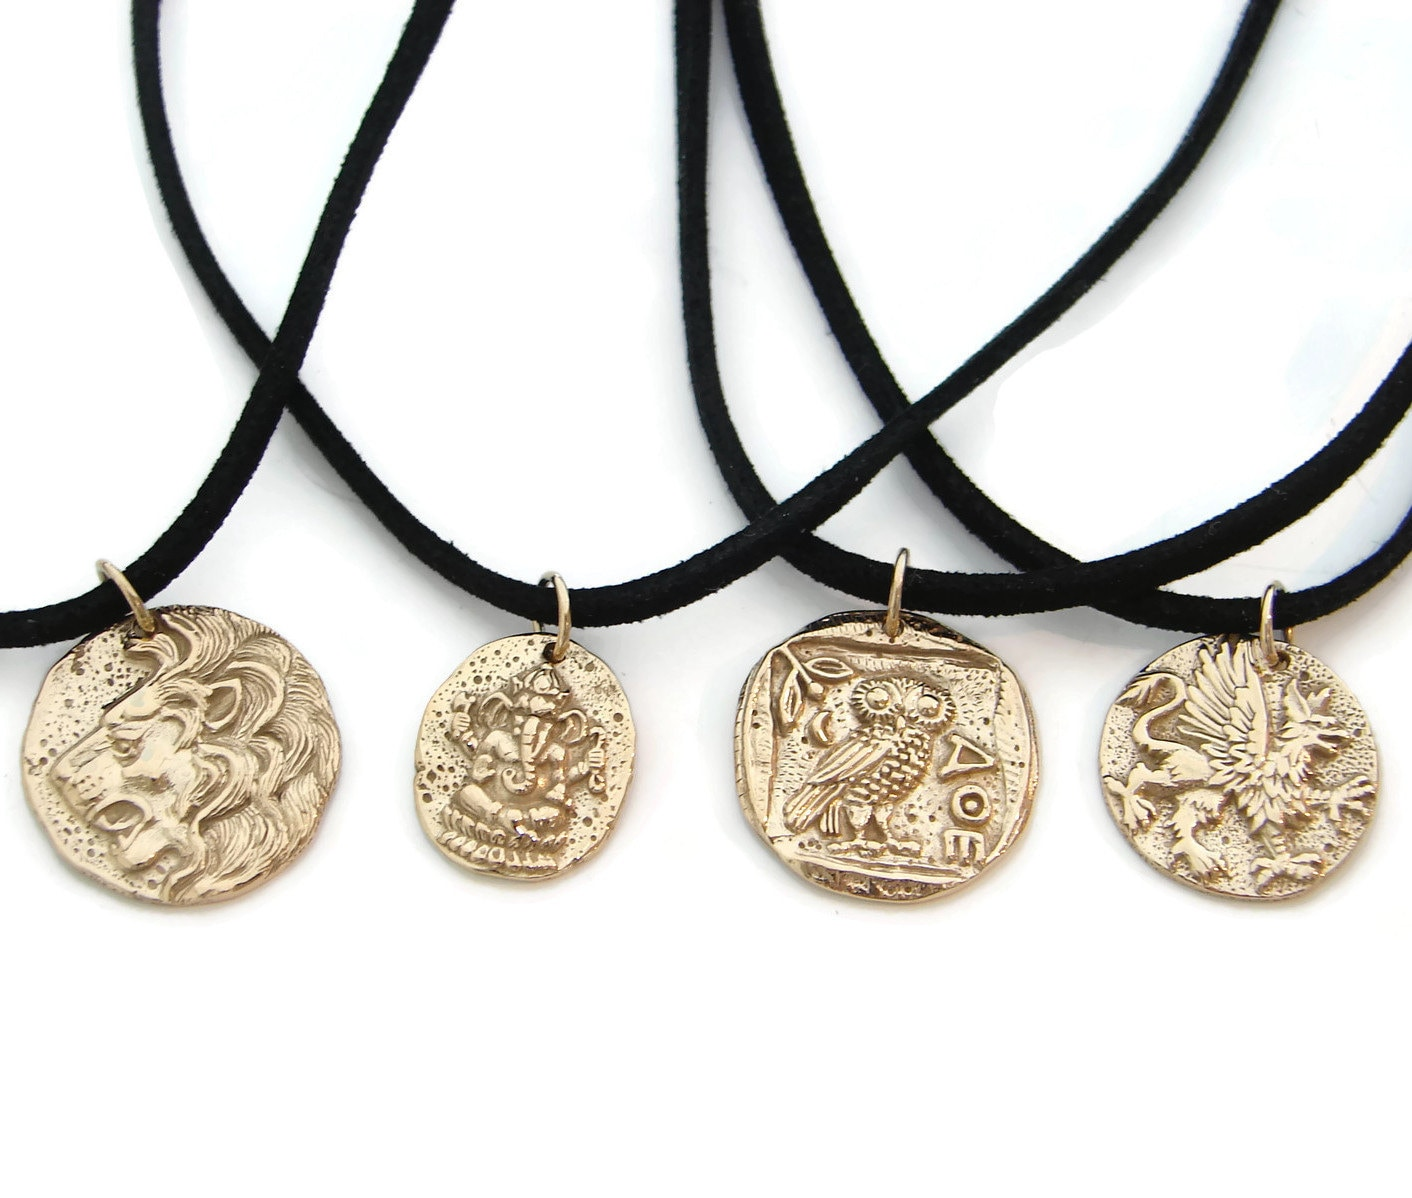 necklaces for with meanings more information